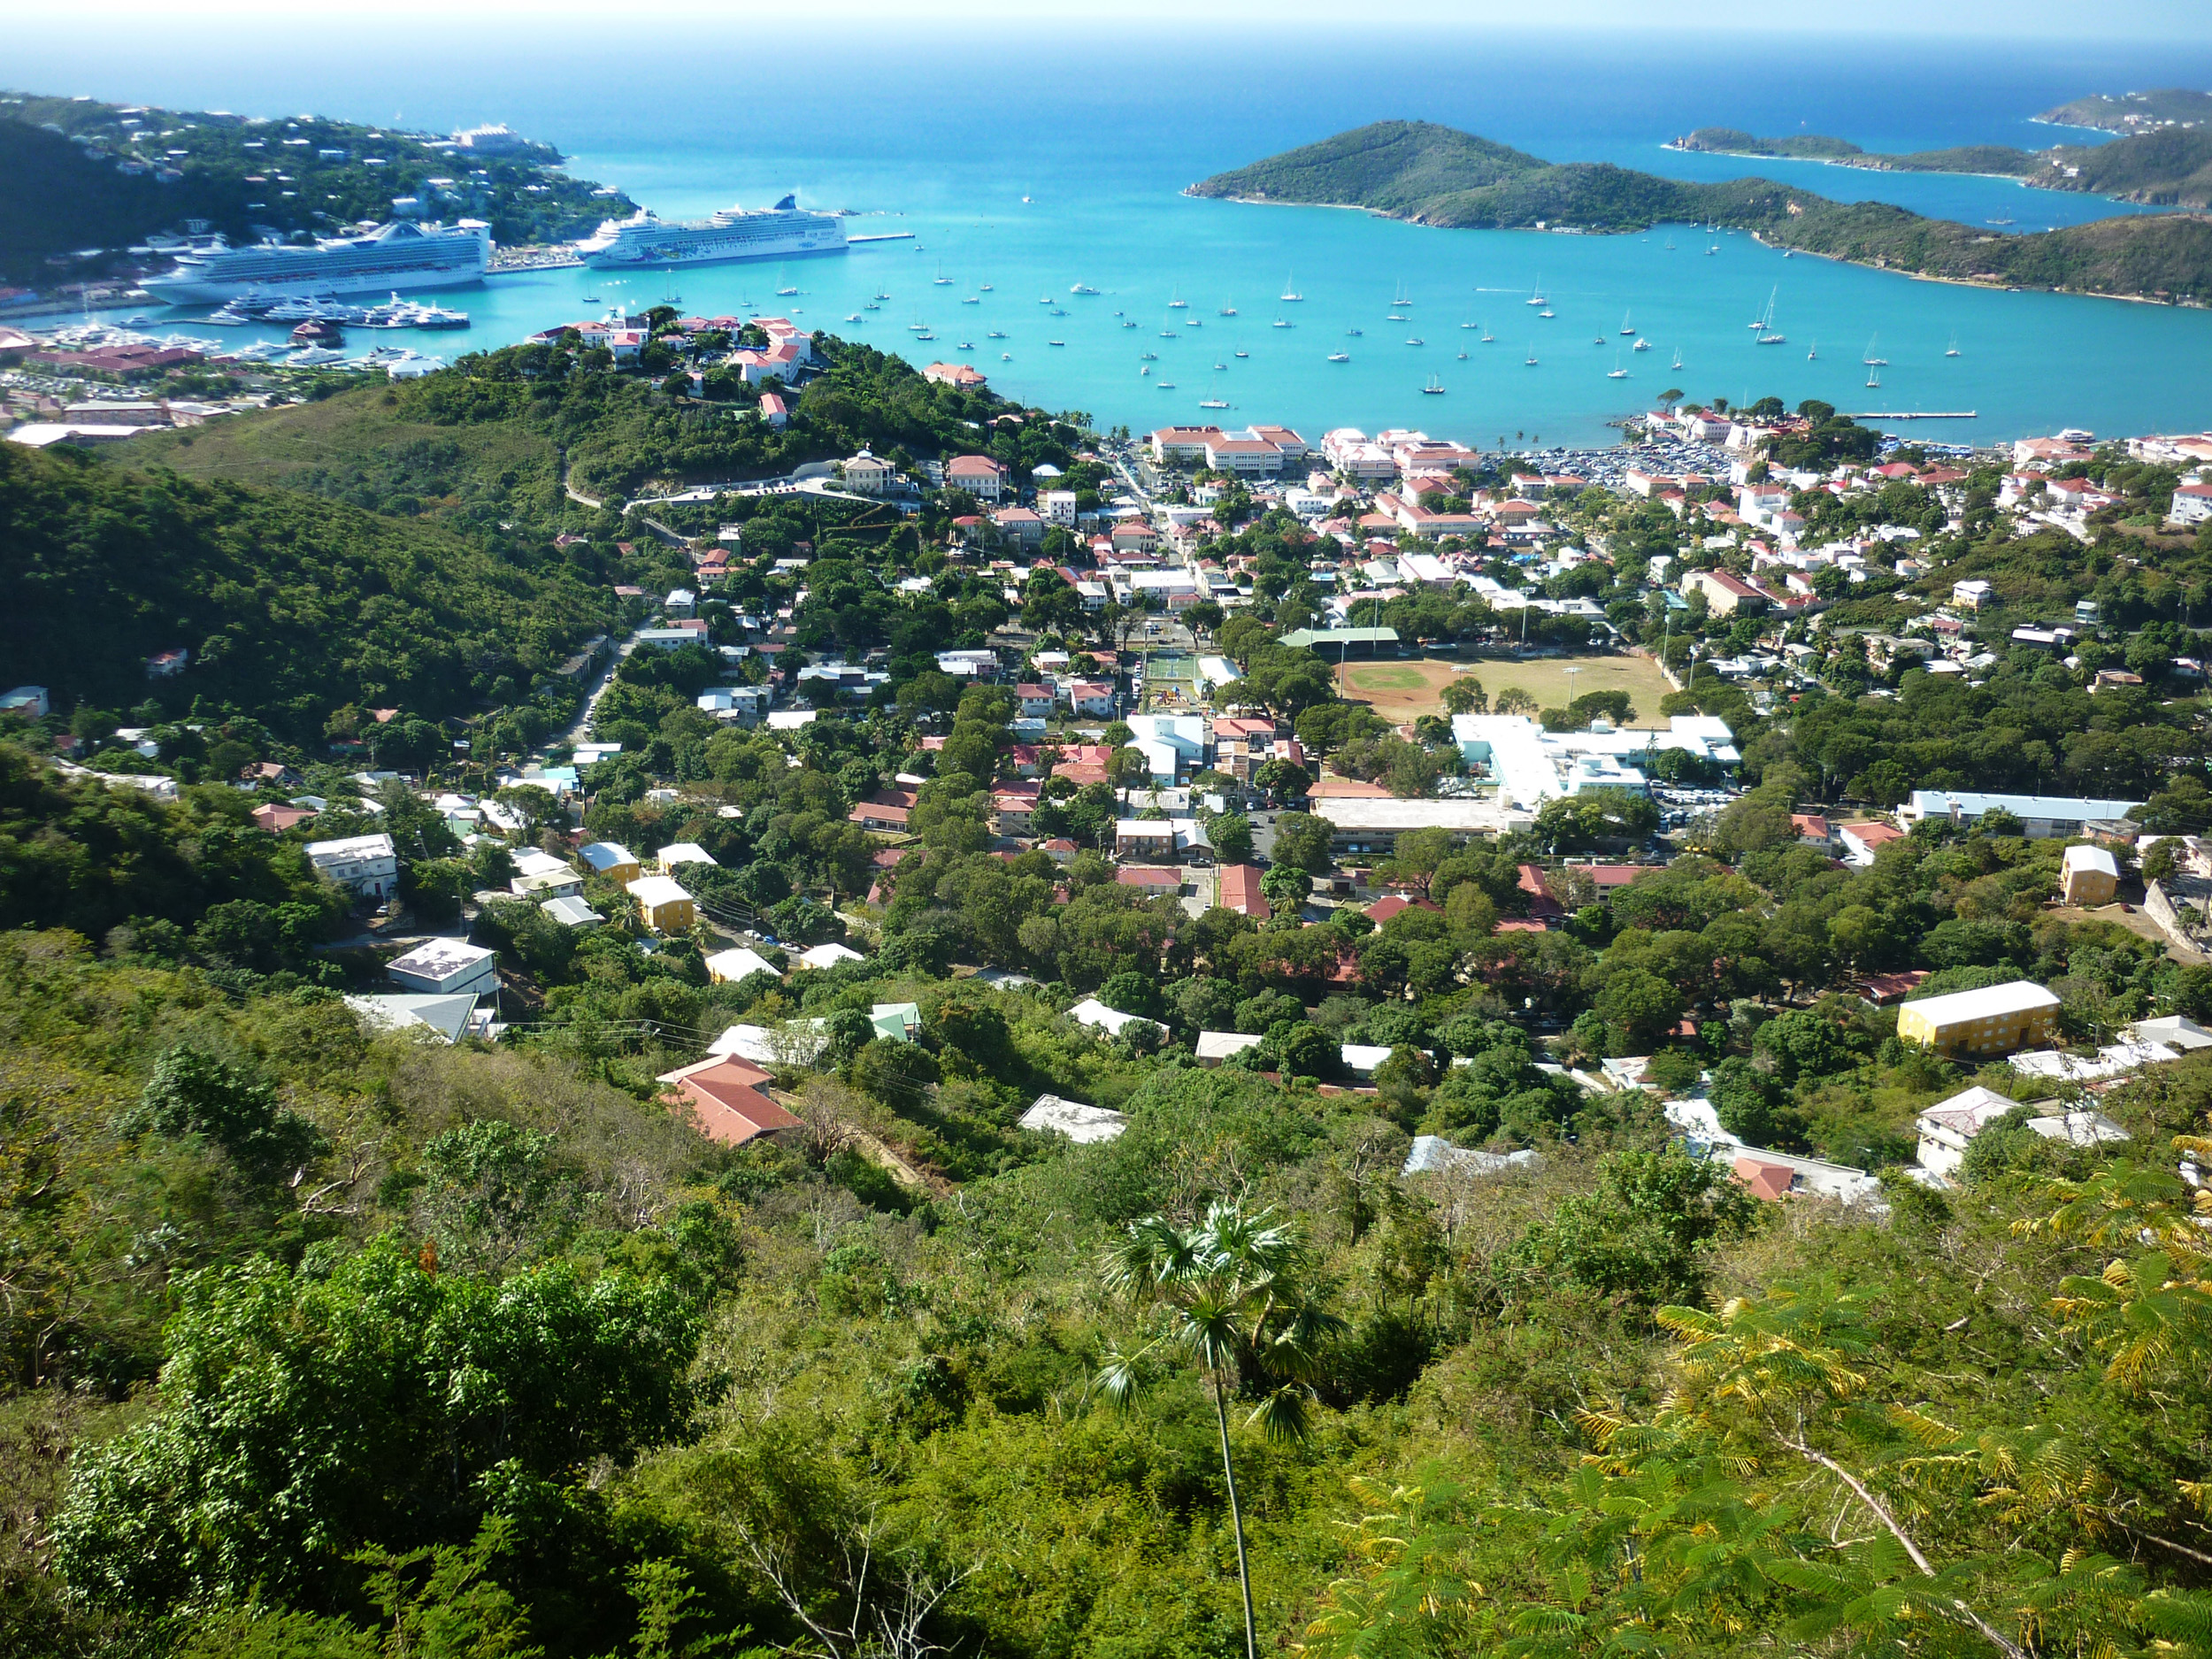 the capital of the islands of st thomas, charlotte amalie